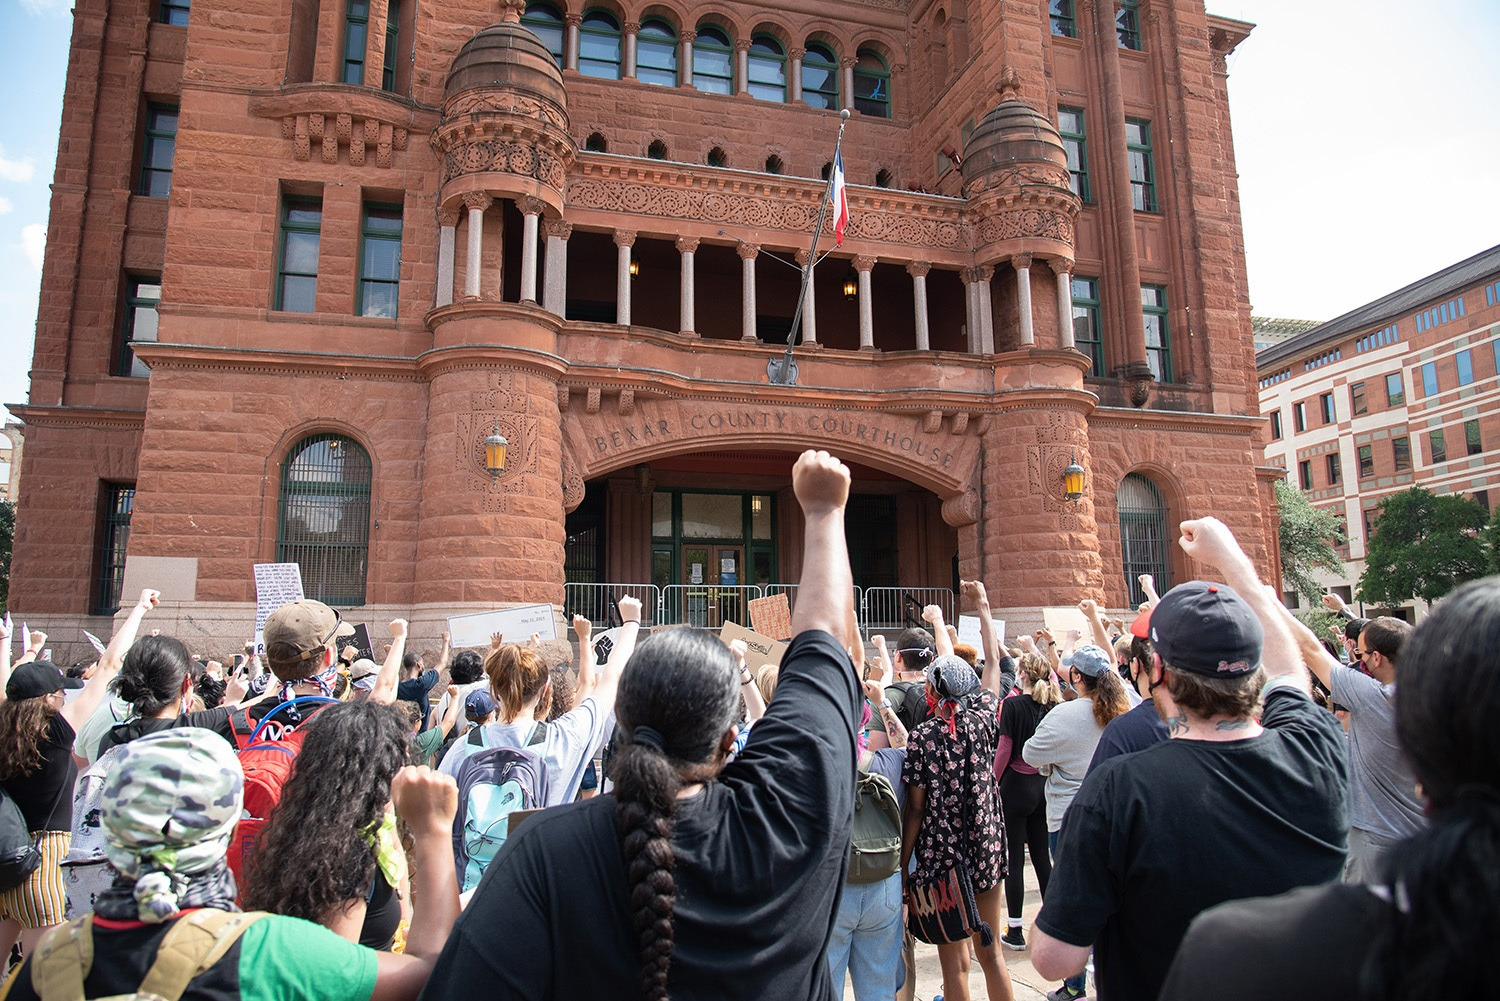 Protestors arrive at the Bexar County Courthouse, Thursday, June 4.Photo by V. Finster | Heron Contributor